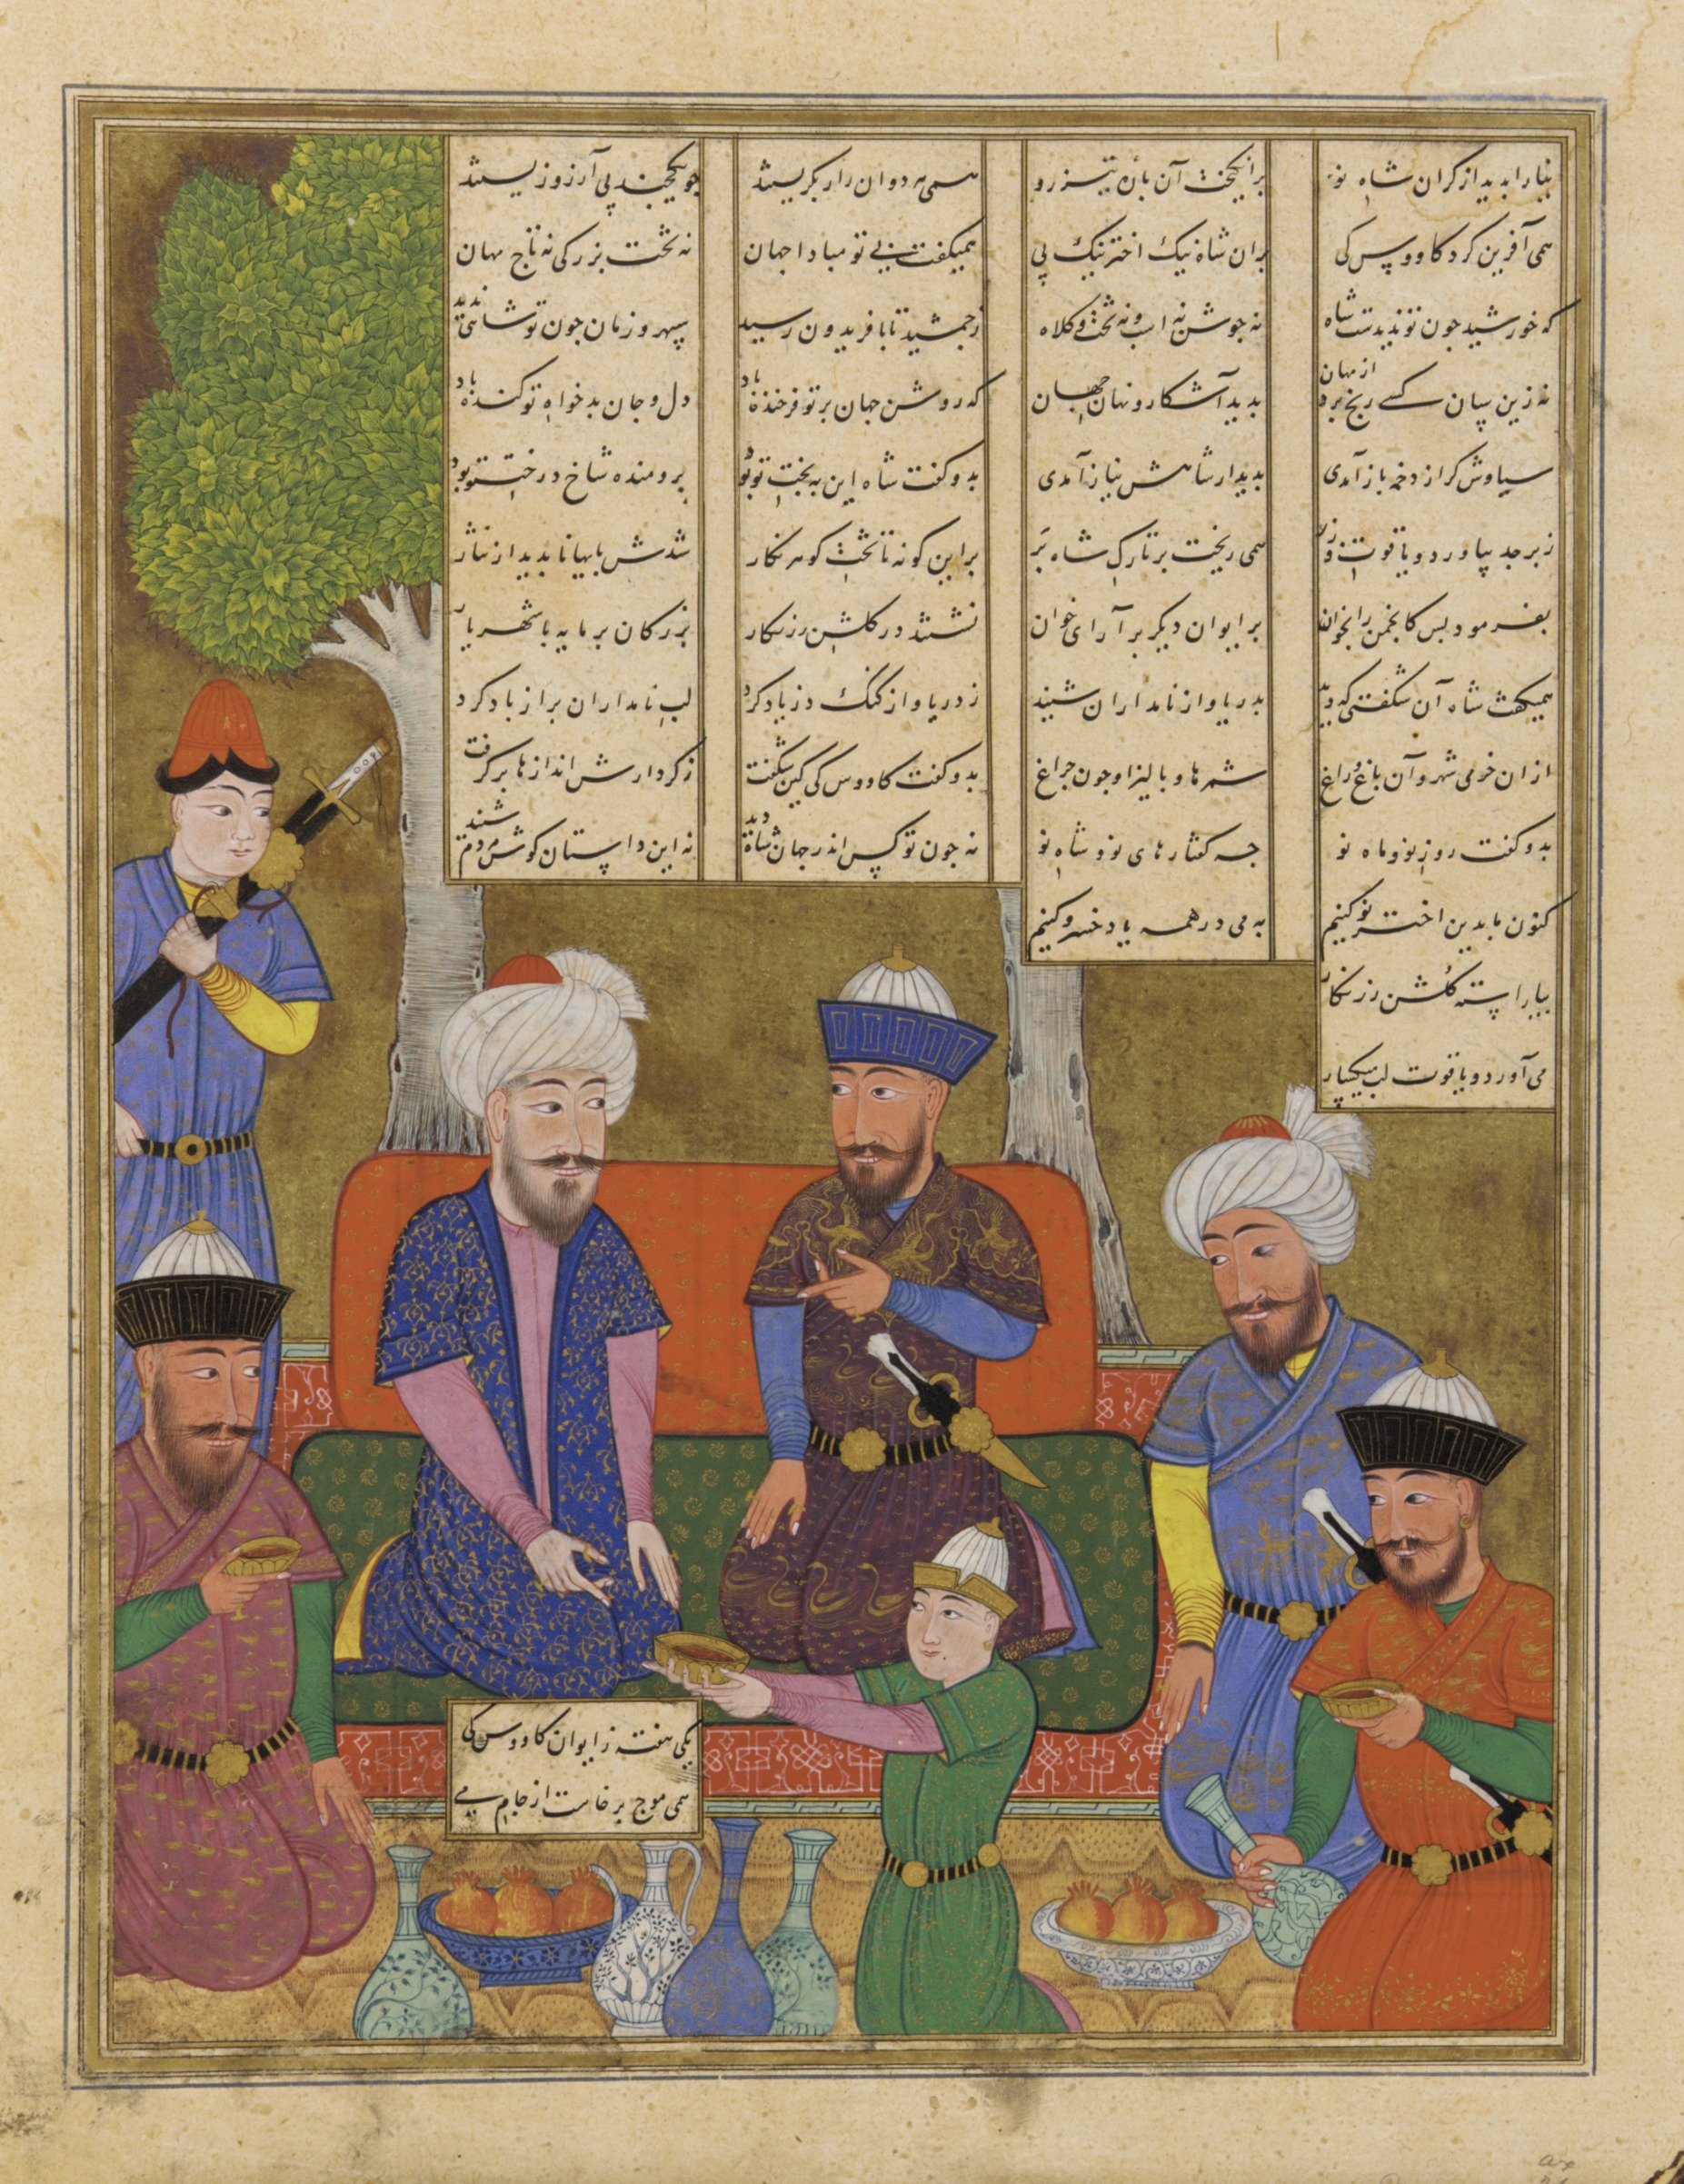 Folio from a Shahnama (Book of kings) by Firdawsi (d. 1020)